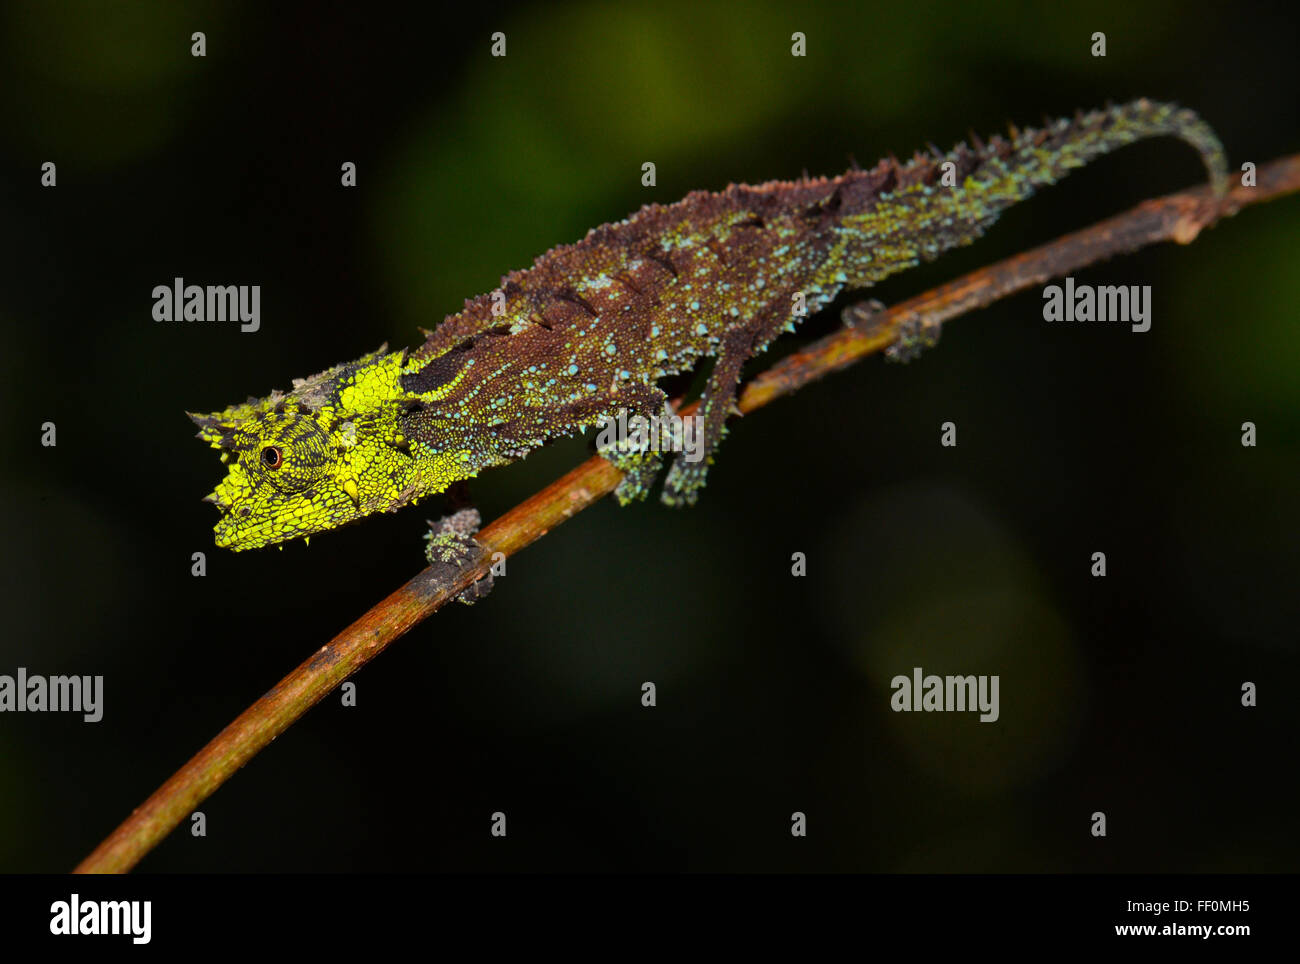 Brookesia vadoni (Brookesia vadoni), male chameleon, rainforest, Marojejy National Park, northeastern Madagascar, - Stock Image